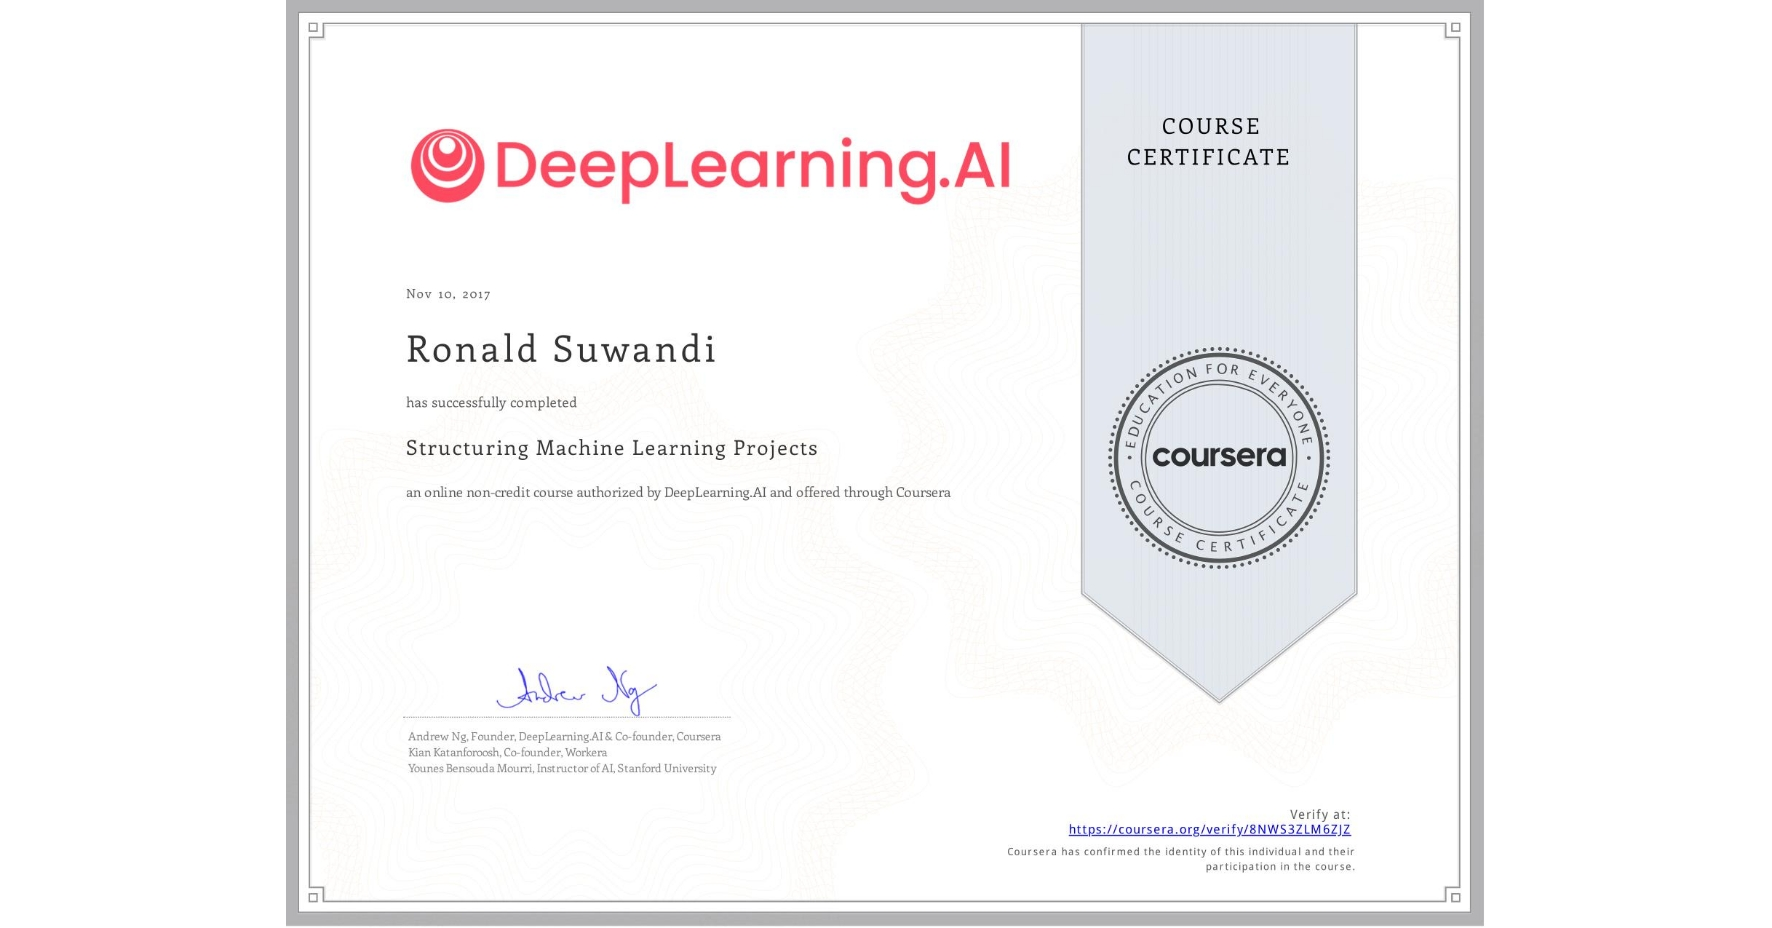 View certificate for Ronald Suwandi, Structuring Machine Learning Projects, an online non-credit course authorized by DeepLearning.AI and offered through Coursera